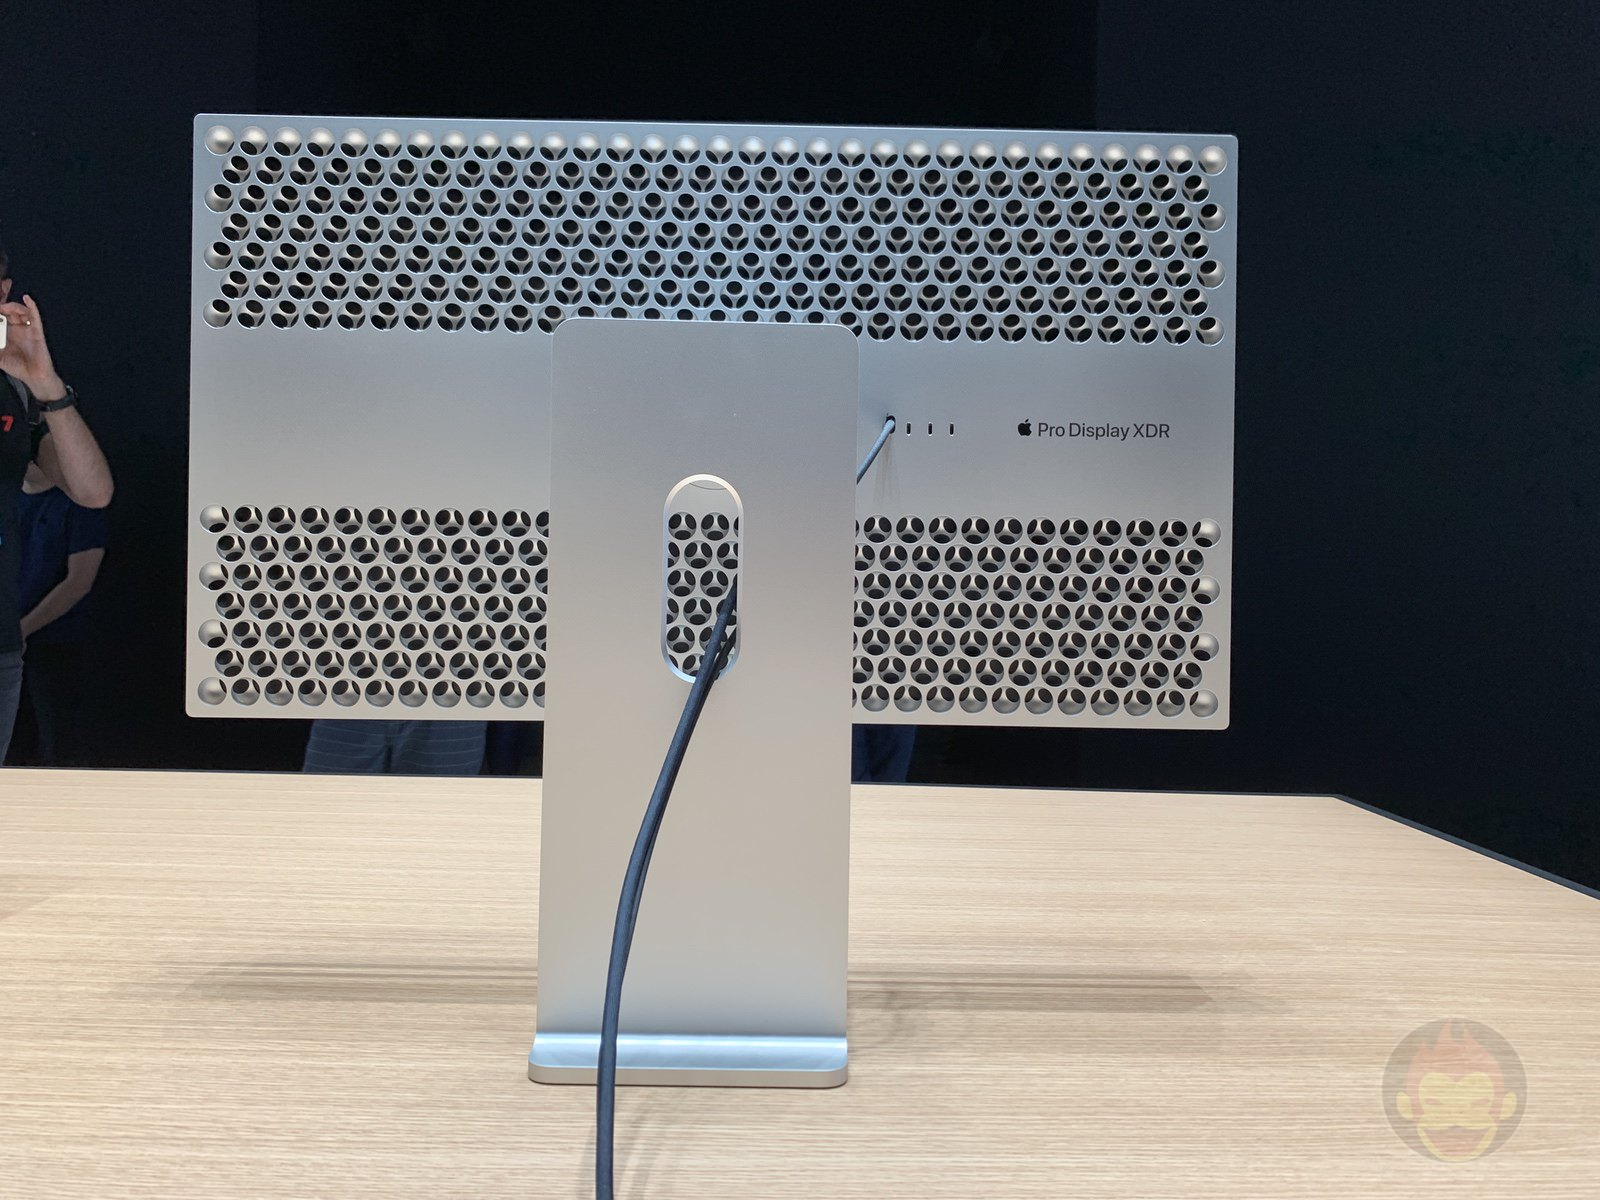 Mac Pro 2019 at WWDC19 Hands on 04